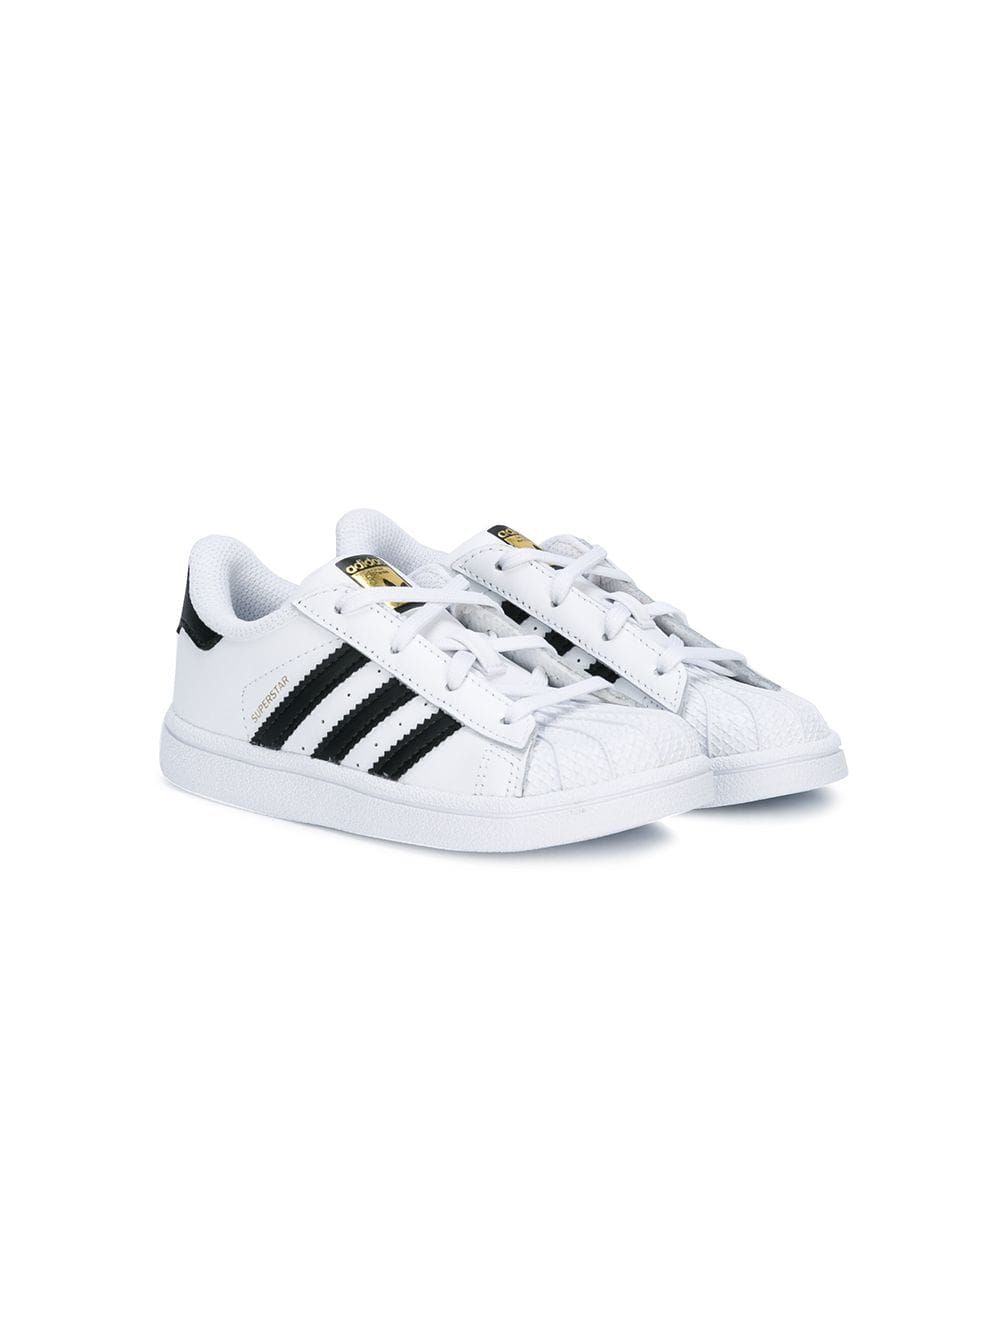 buy popular 90929 6012a Adidas Kids Superstar sneakers - White | Products in 2019 ...